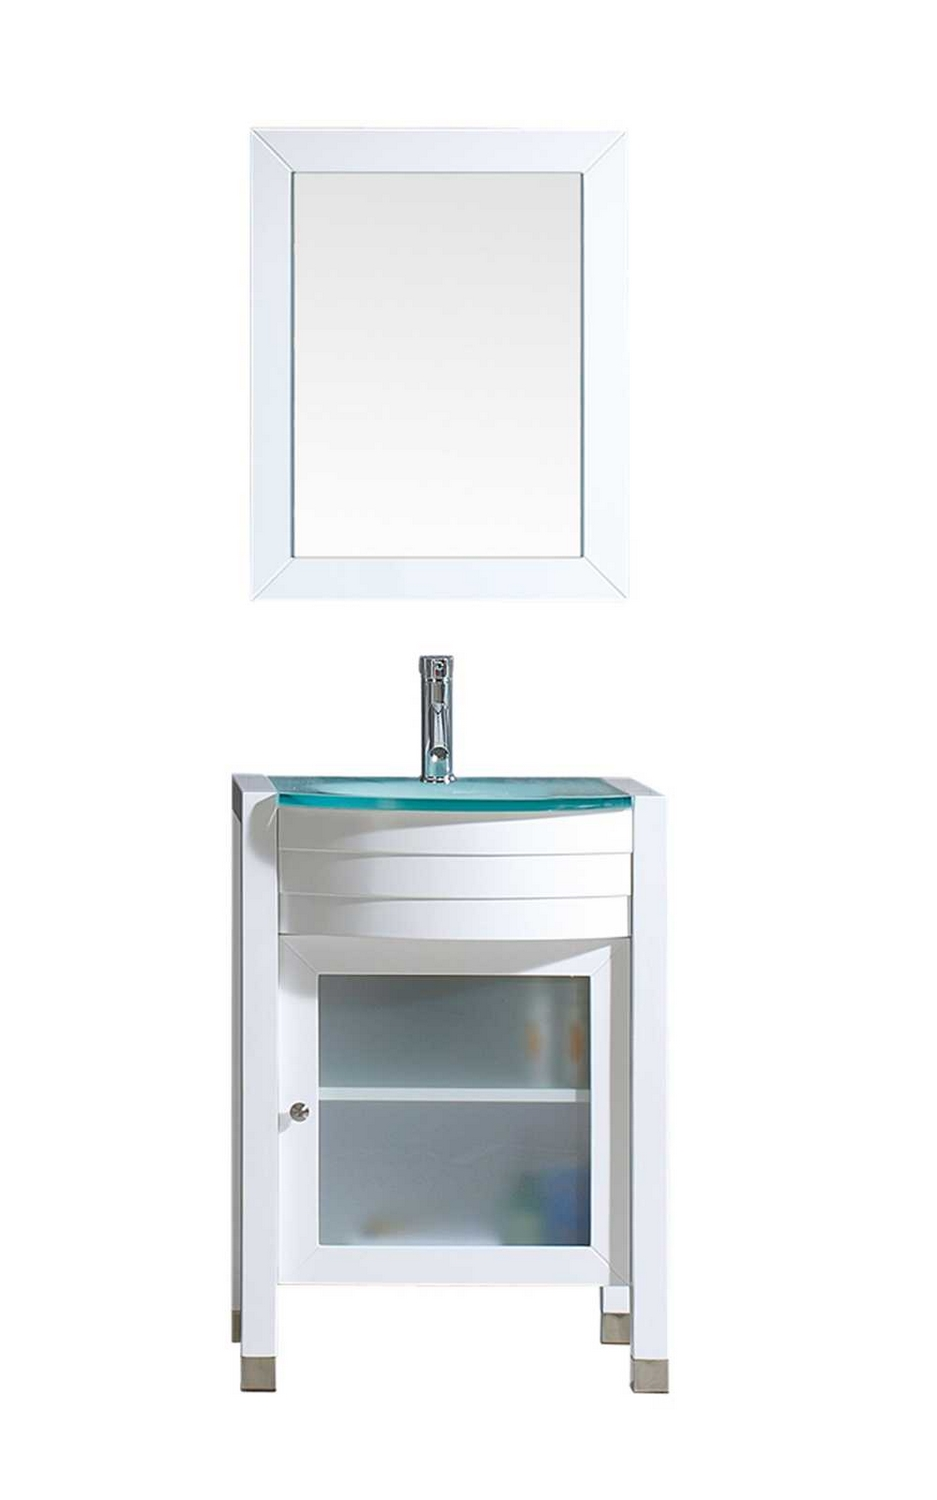 usa ava 24 single bathroom vanity cabinet set in white tempered glass